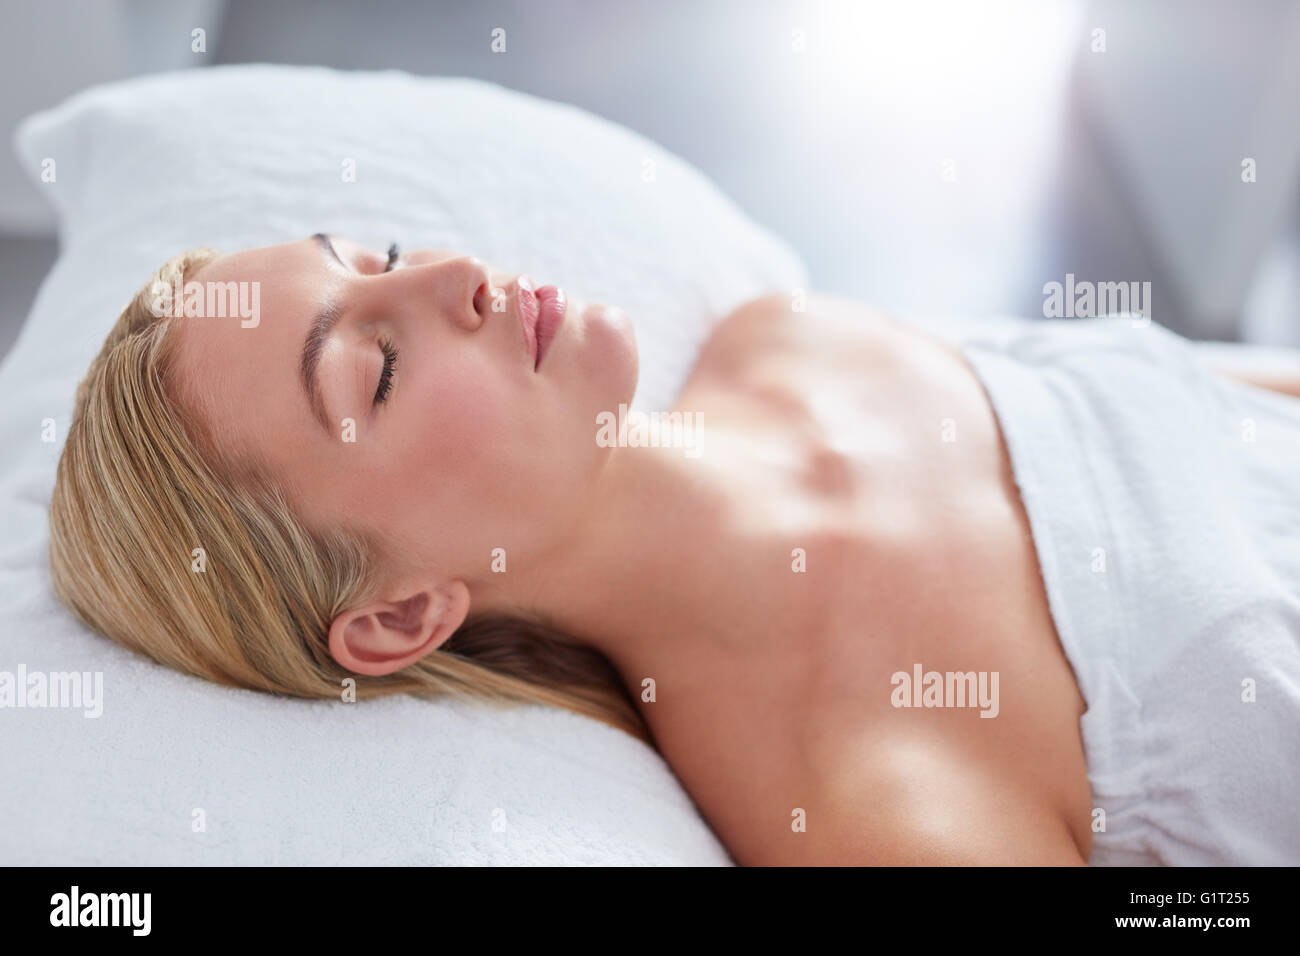 Close up of attractive woman at dayspa. She is lying on massage table. Beauty and health concept. - Stock Image